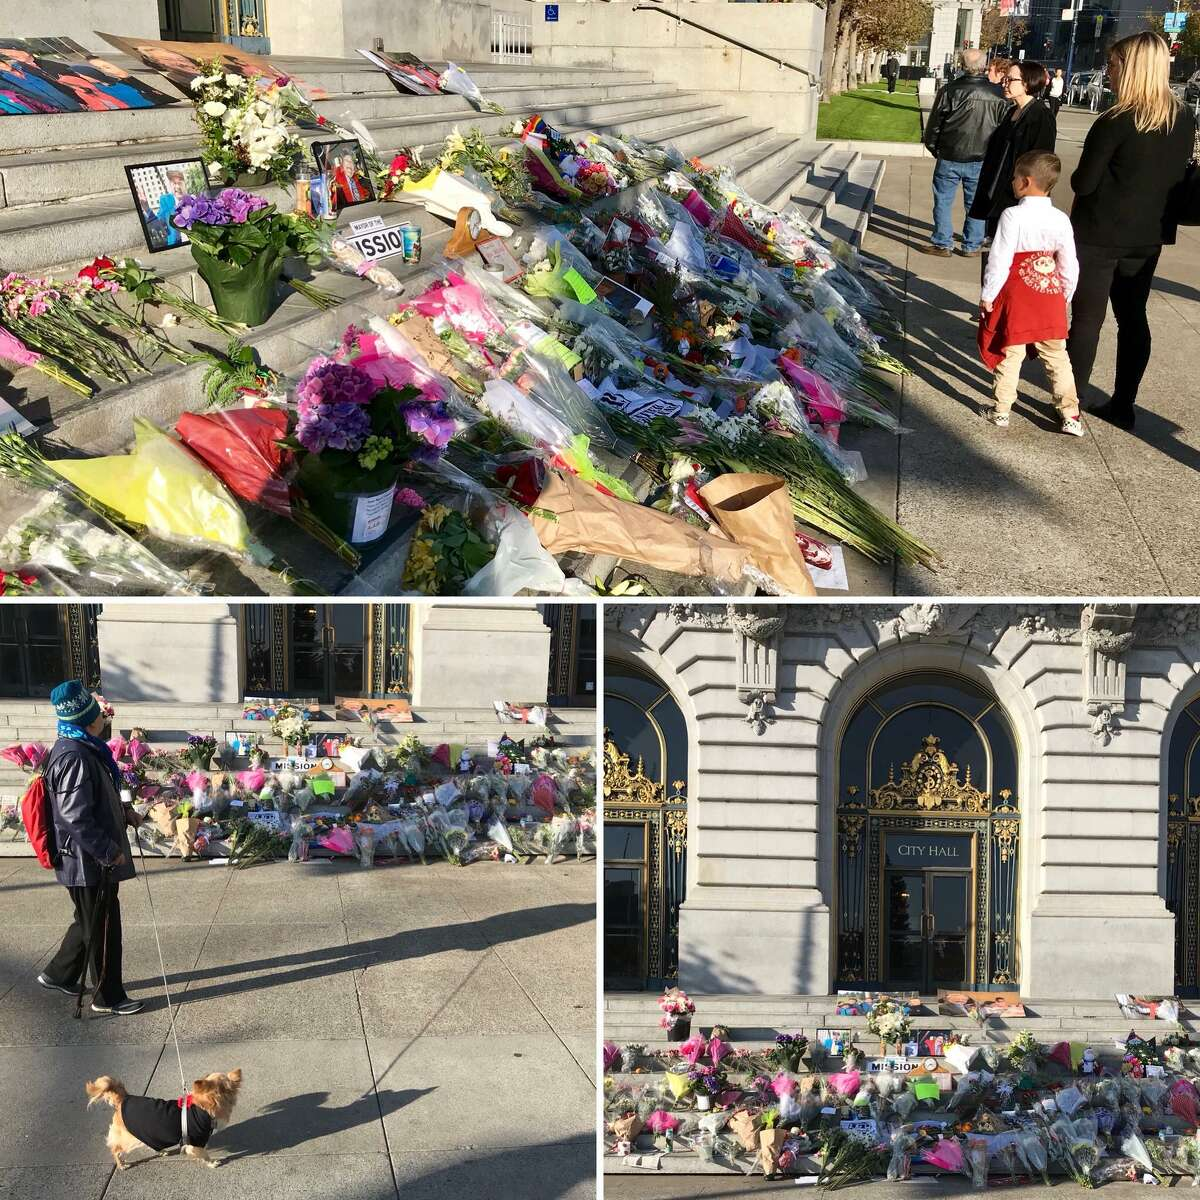 A memorial for Mayor Ed Lee continues to grow as mourners leave flowers, notes and photos on the steps of San Francisco City Hall.